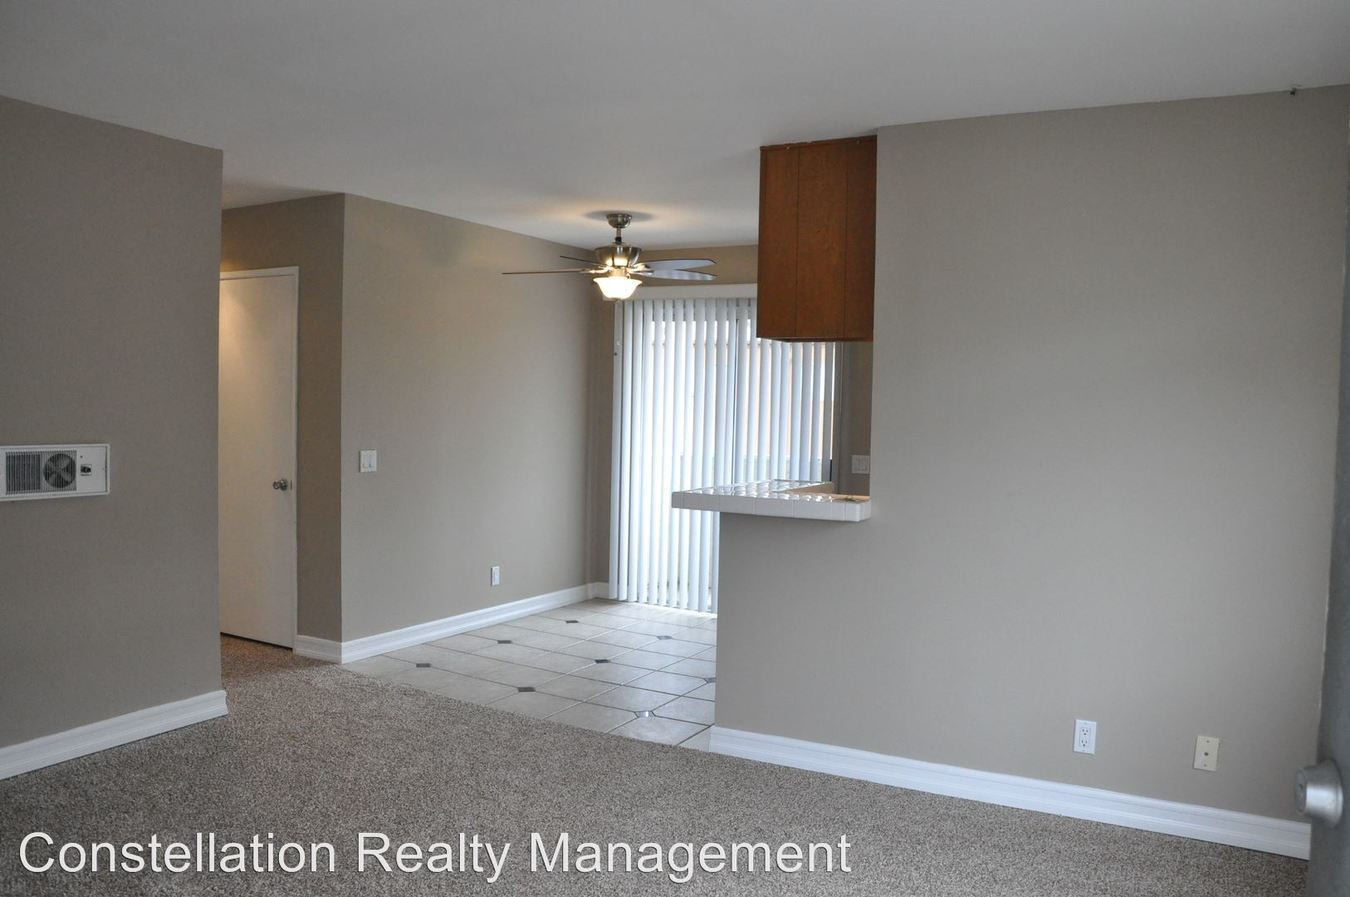 2 Bedrooms 2 Bathrooms Apartment for rent at 3735 & 3745 Pershing Ave in San Diego, CA